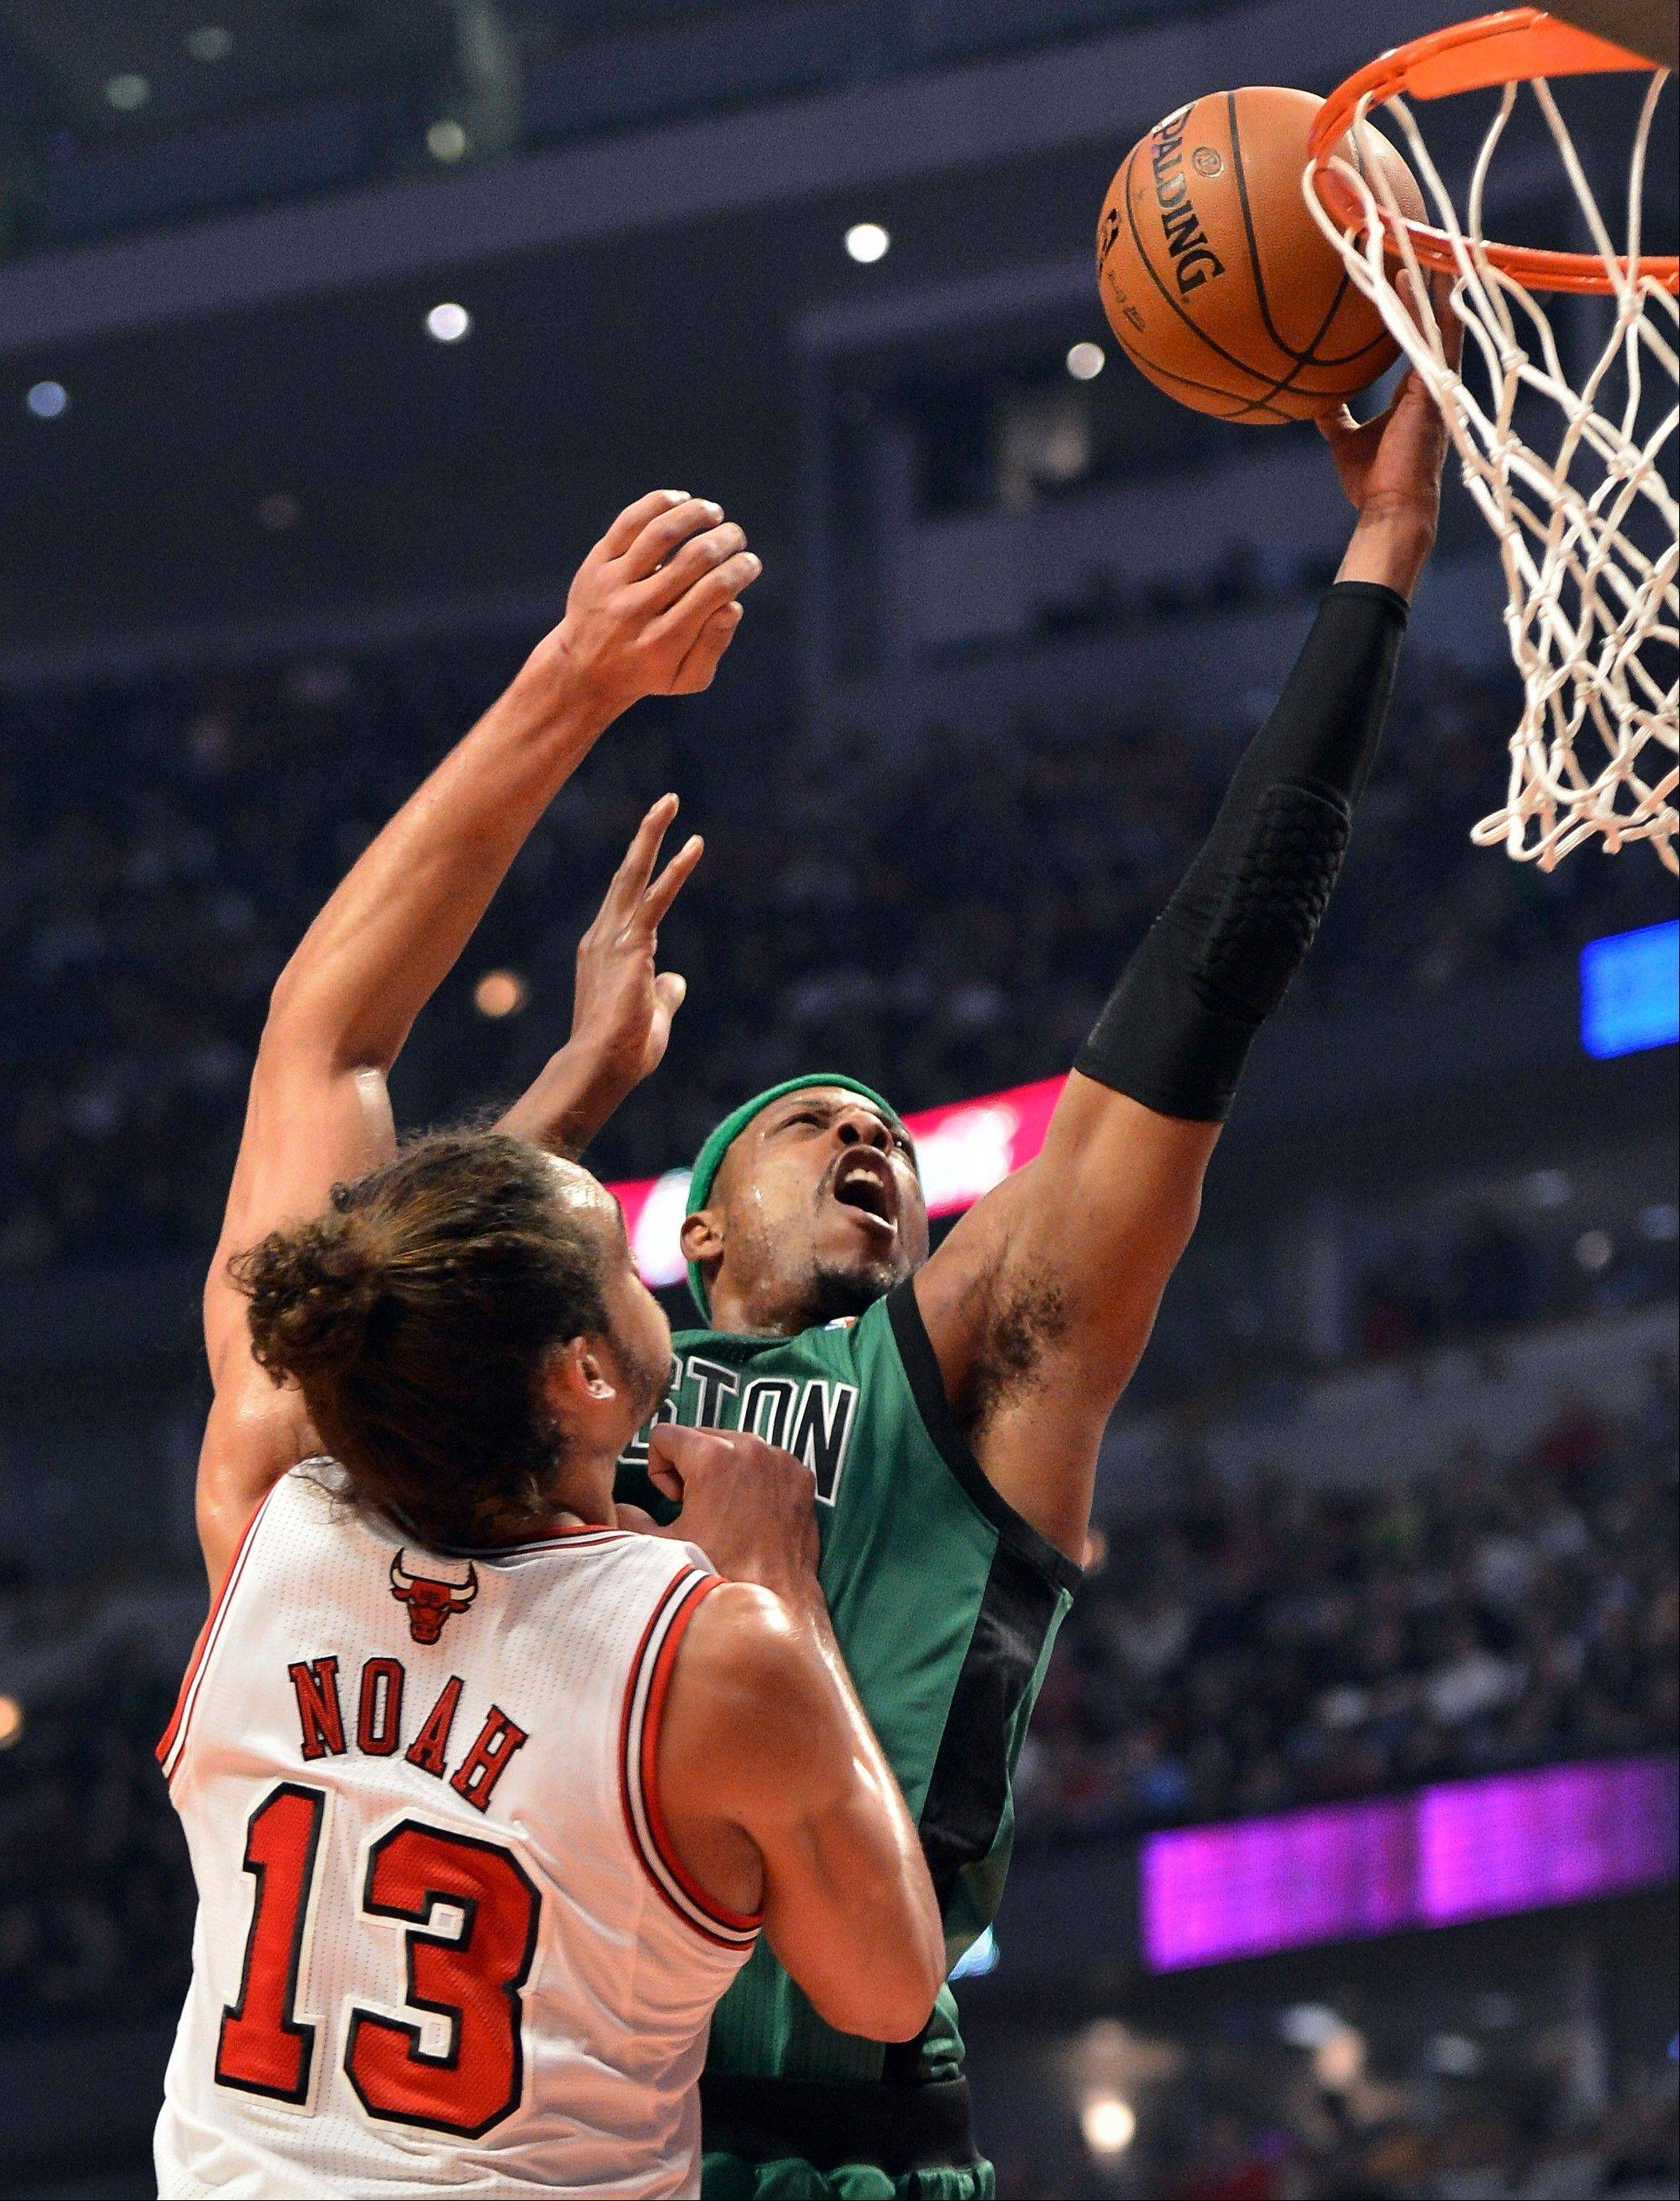 Bulls center Joakim Noah defends the Celtics� Paul Pierce as Pierce goes up for a layup Tuesday night. Noah finished with 11 points, 13 rebounds and 10 assists.